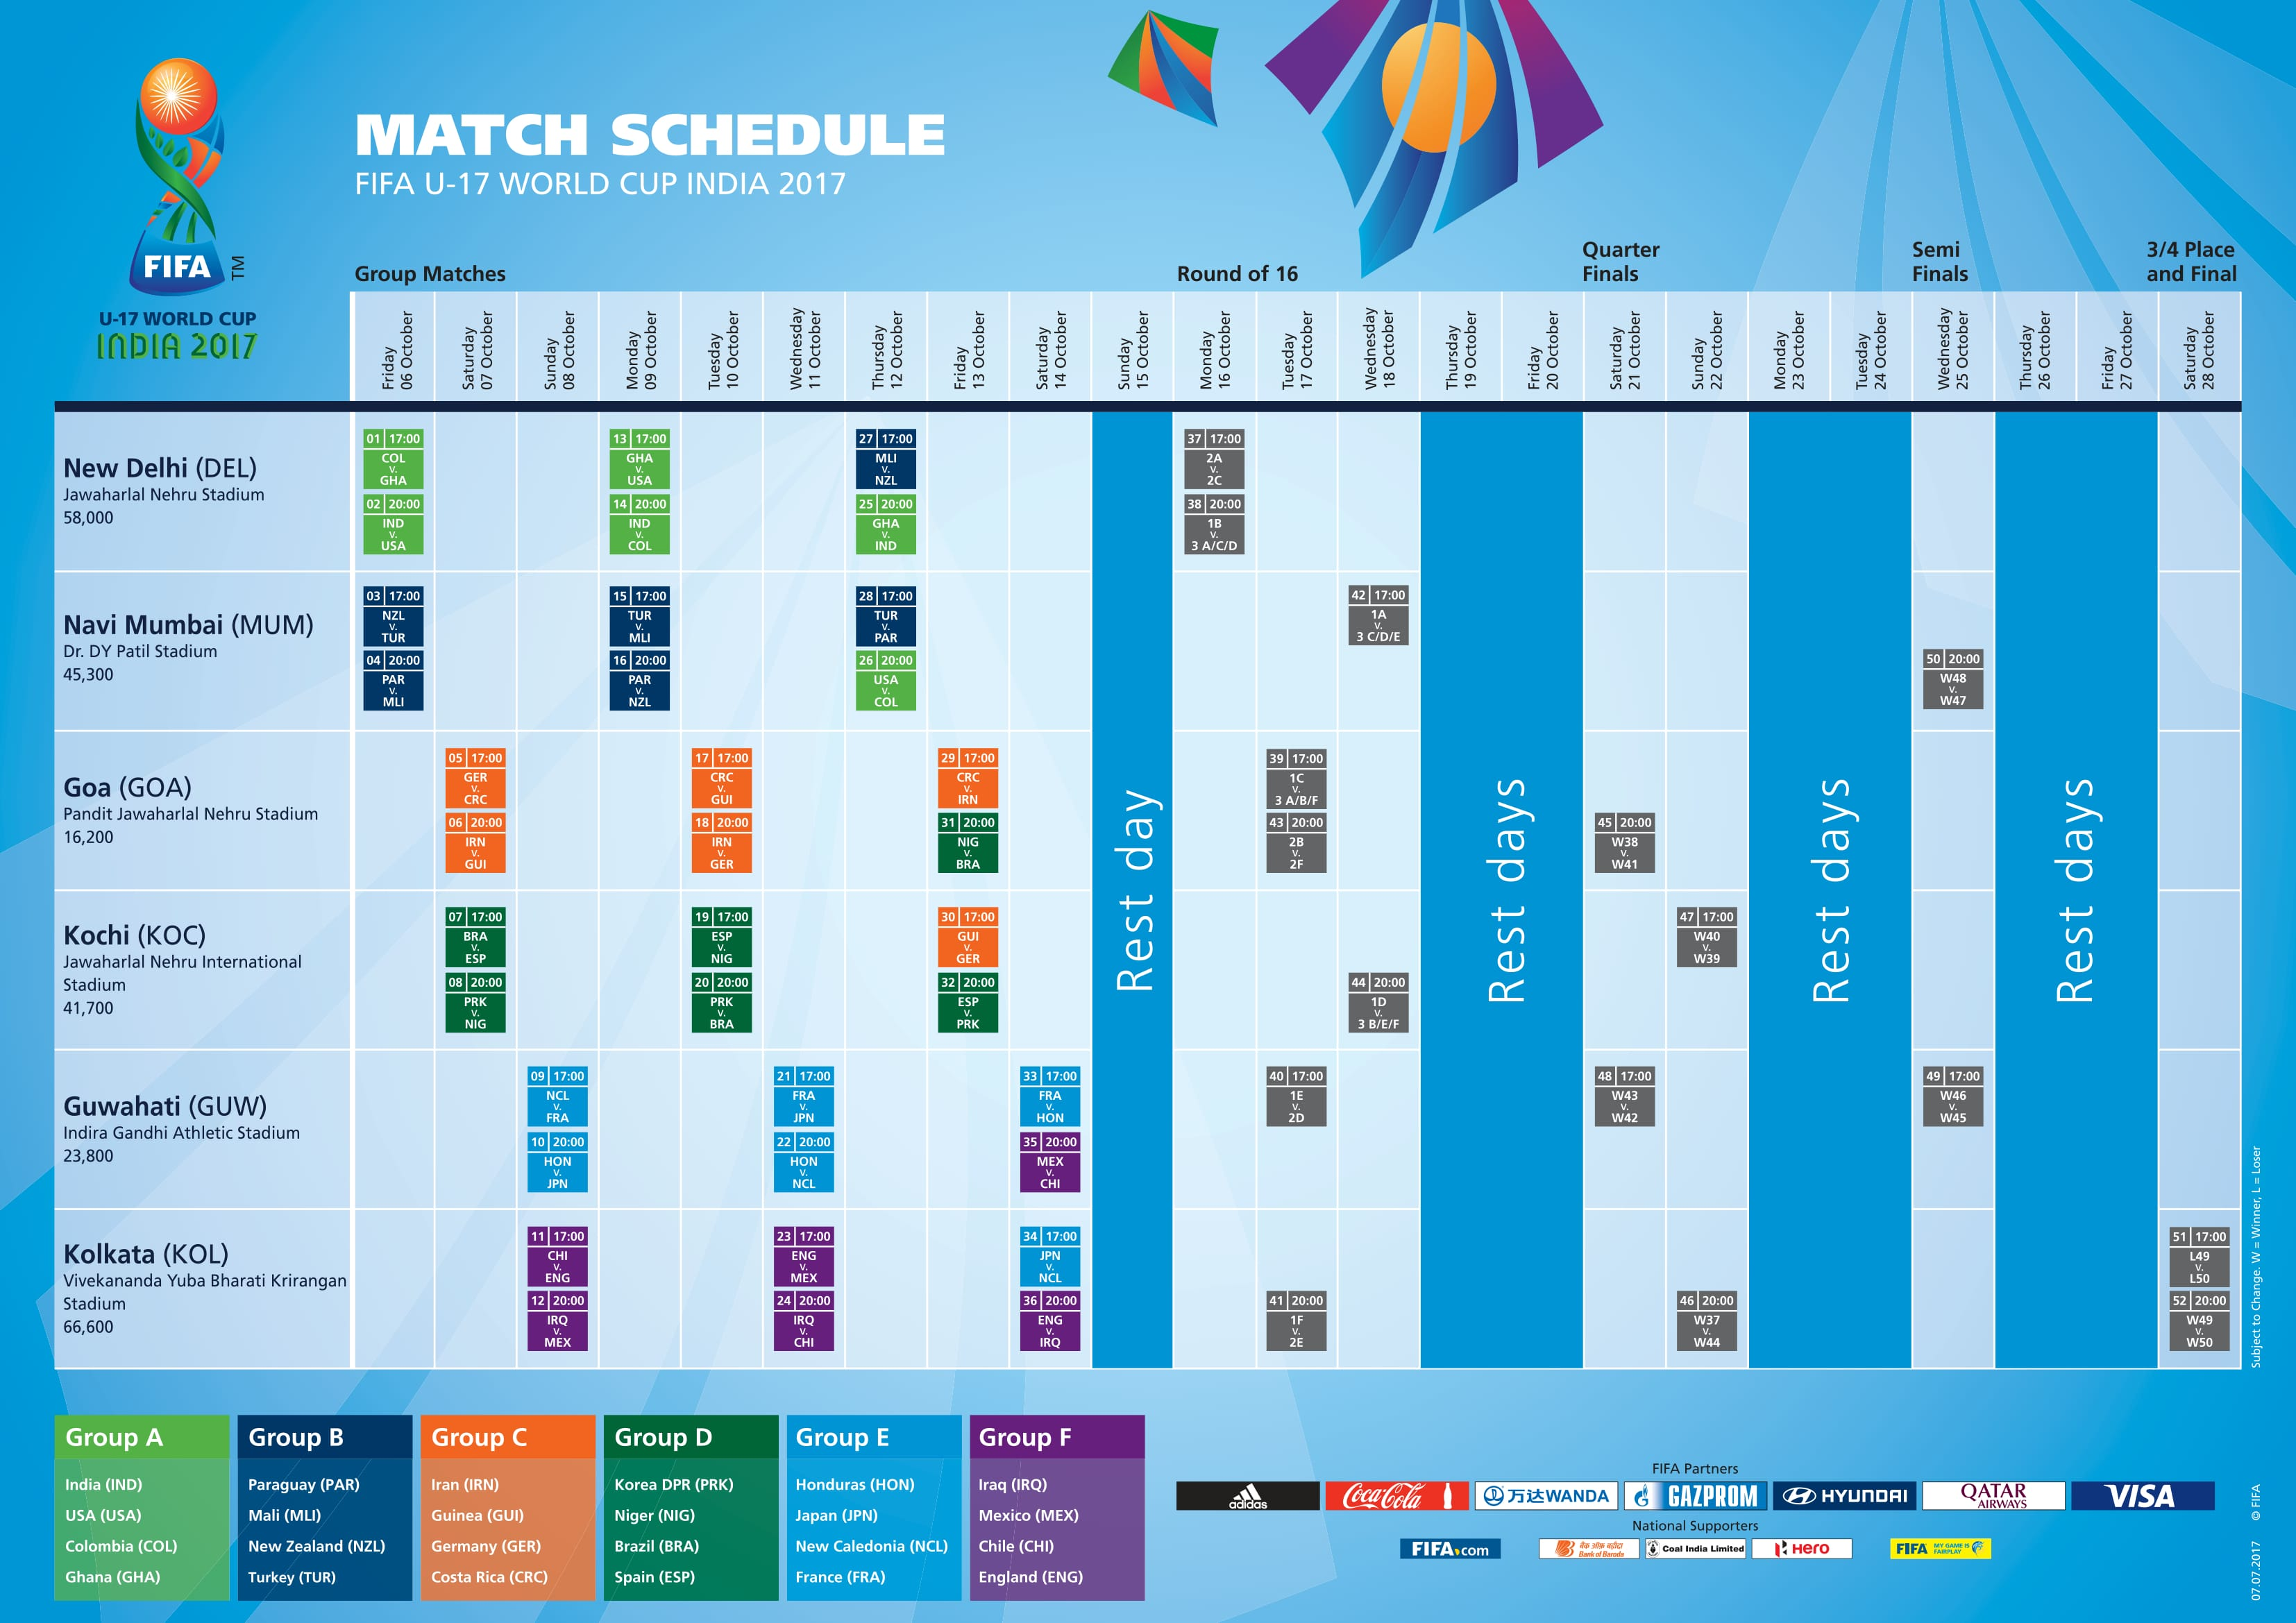 fu17wc2017_matchschedule_07072017_neutral-1